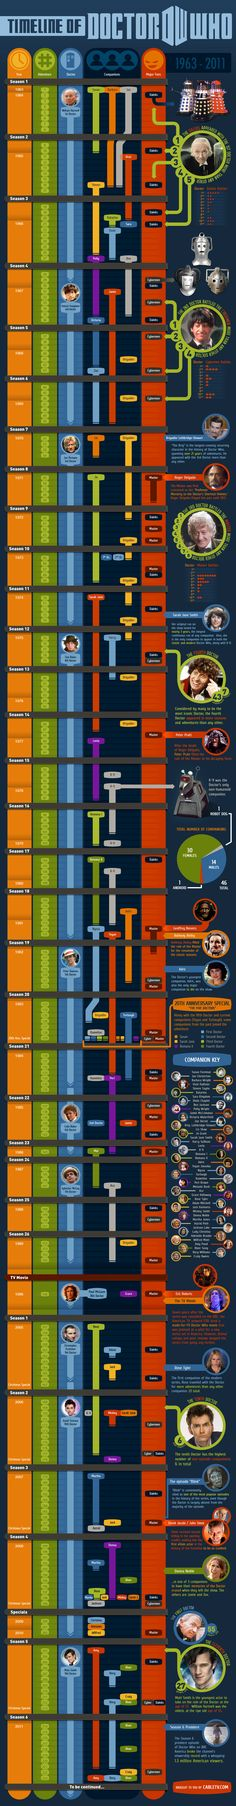 A brilliant infographic, breaking down Dr Who and all its mayhem into easily accessible pieces.   I'd love this as a poster!